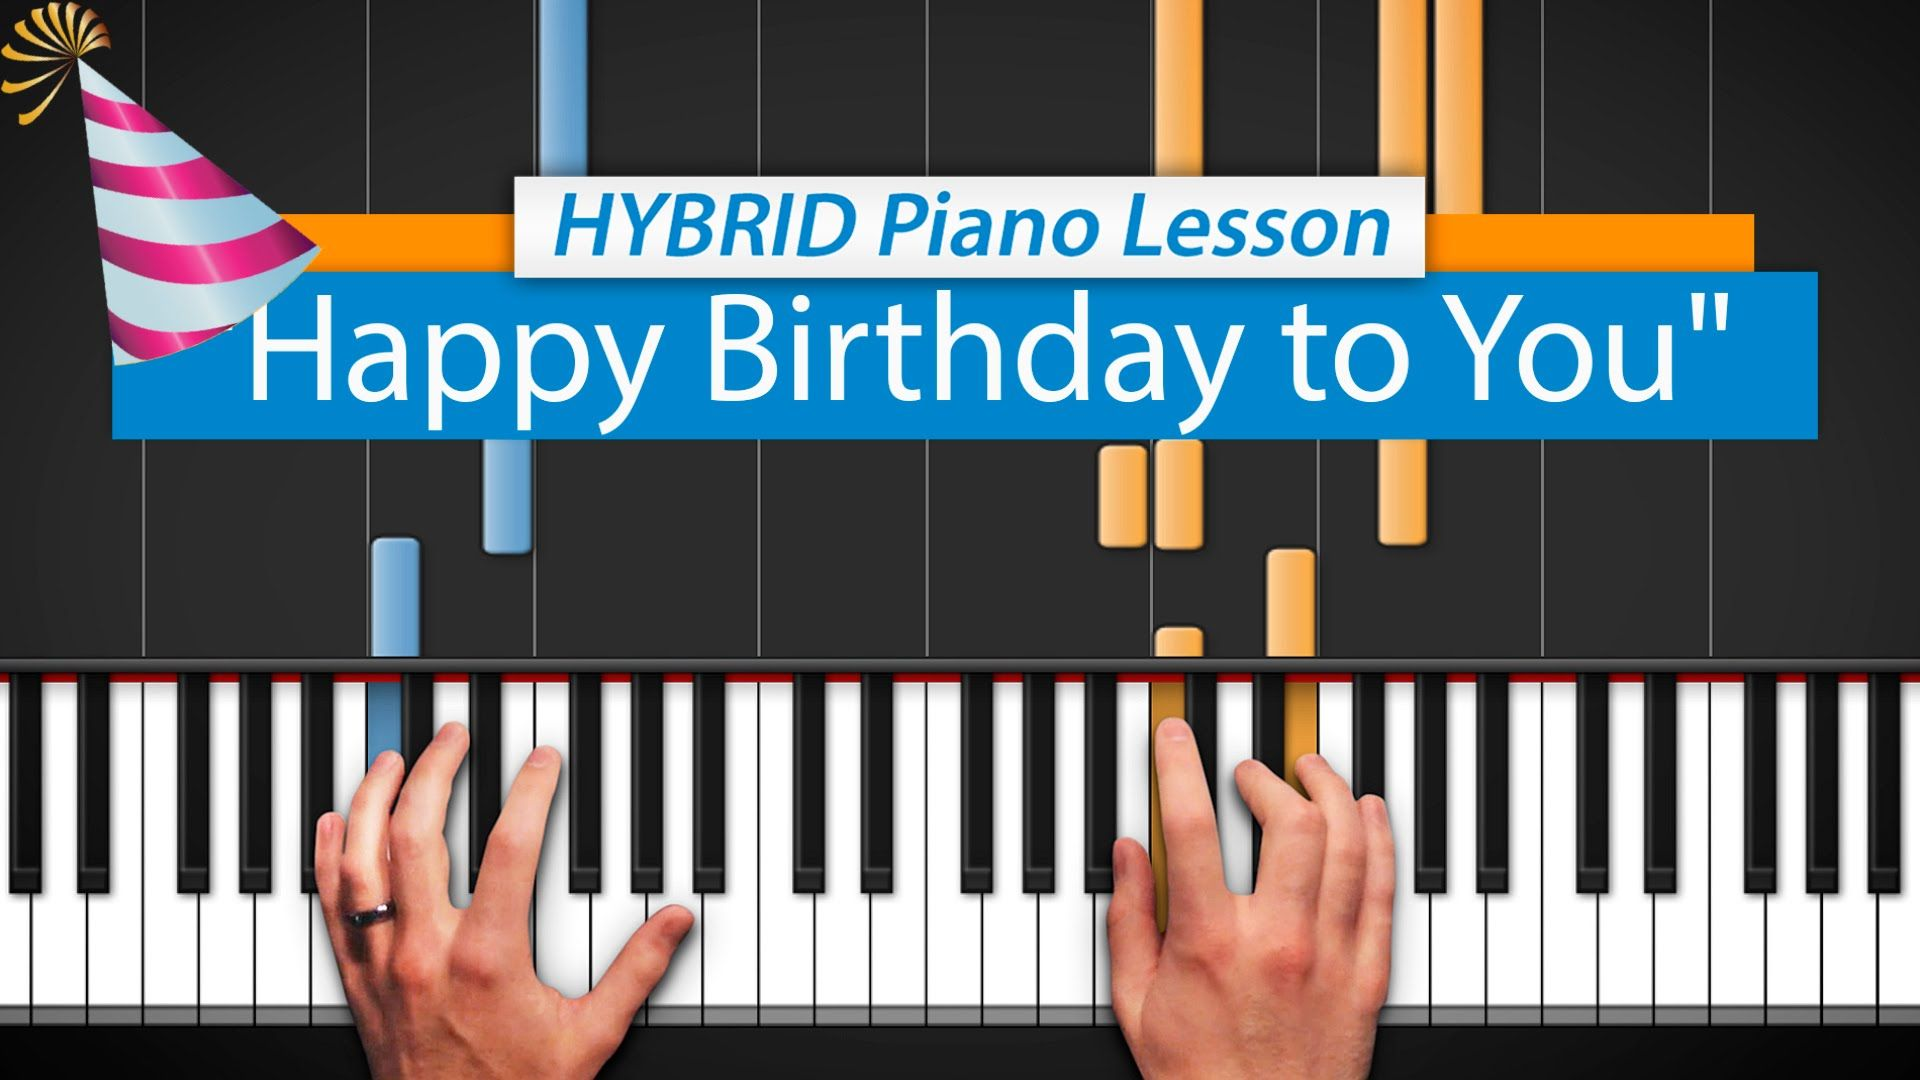 How to play happy birthday to you advanced version piano hdpiano invented hybrid piano lessons and makes the easiest clearest most accurate piano tutorials on the planet learn how to play your favorite songs baditri Gallery